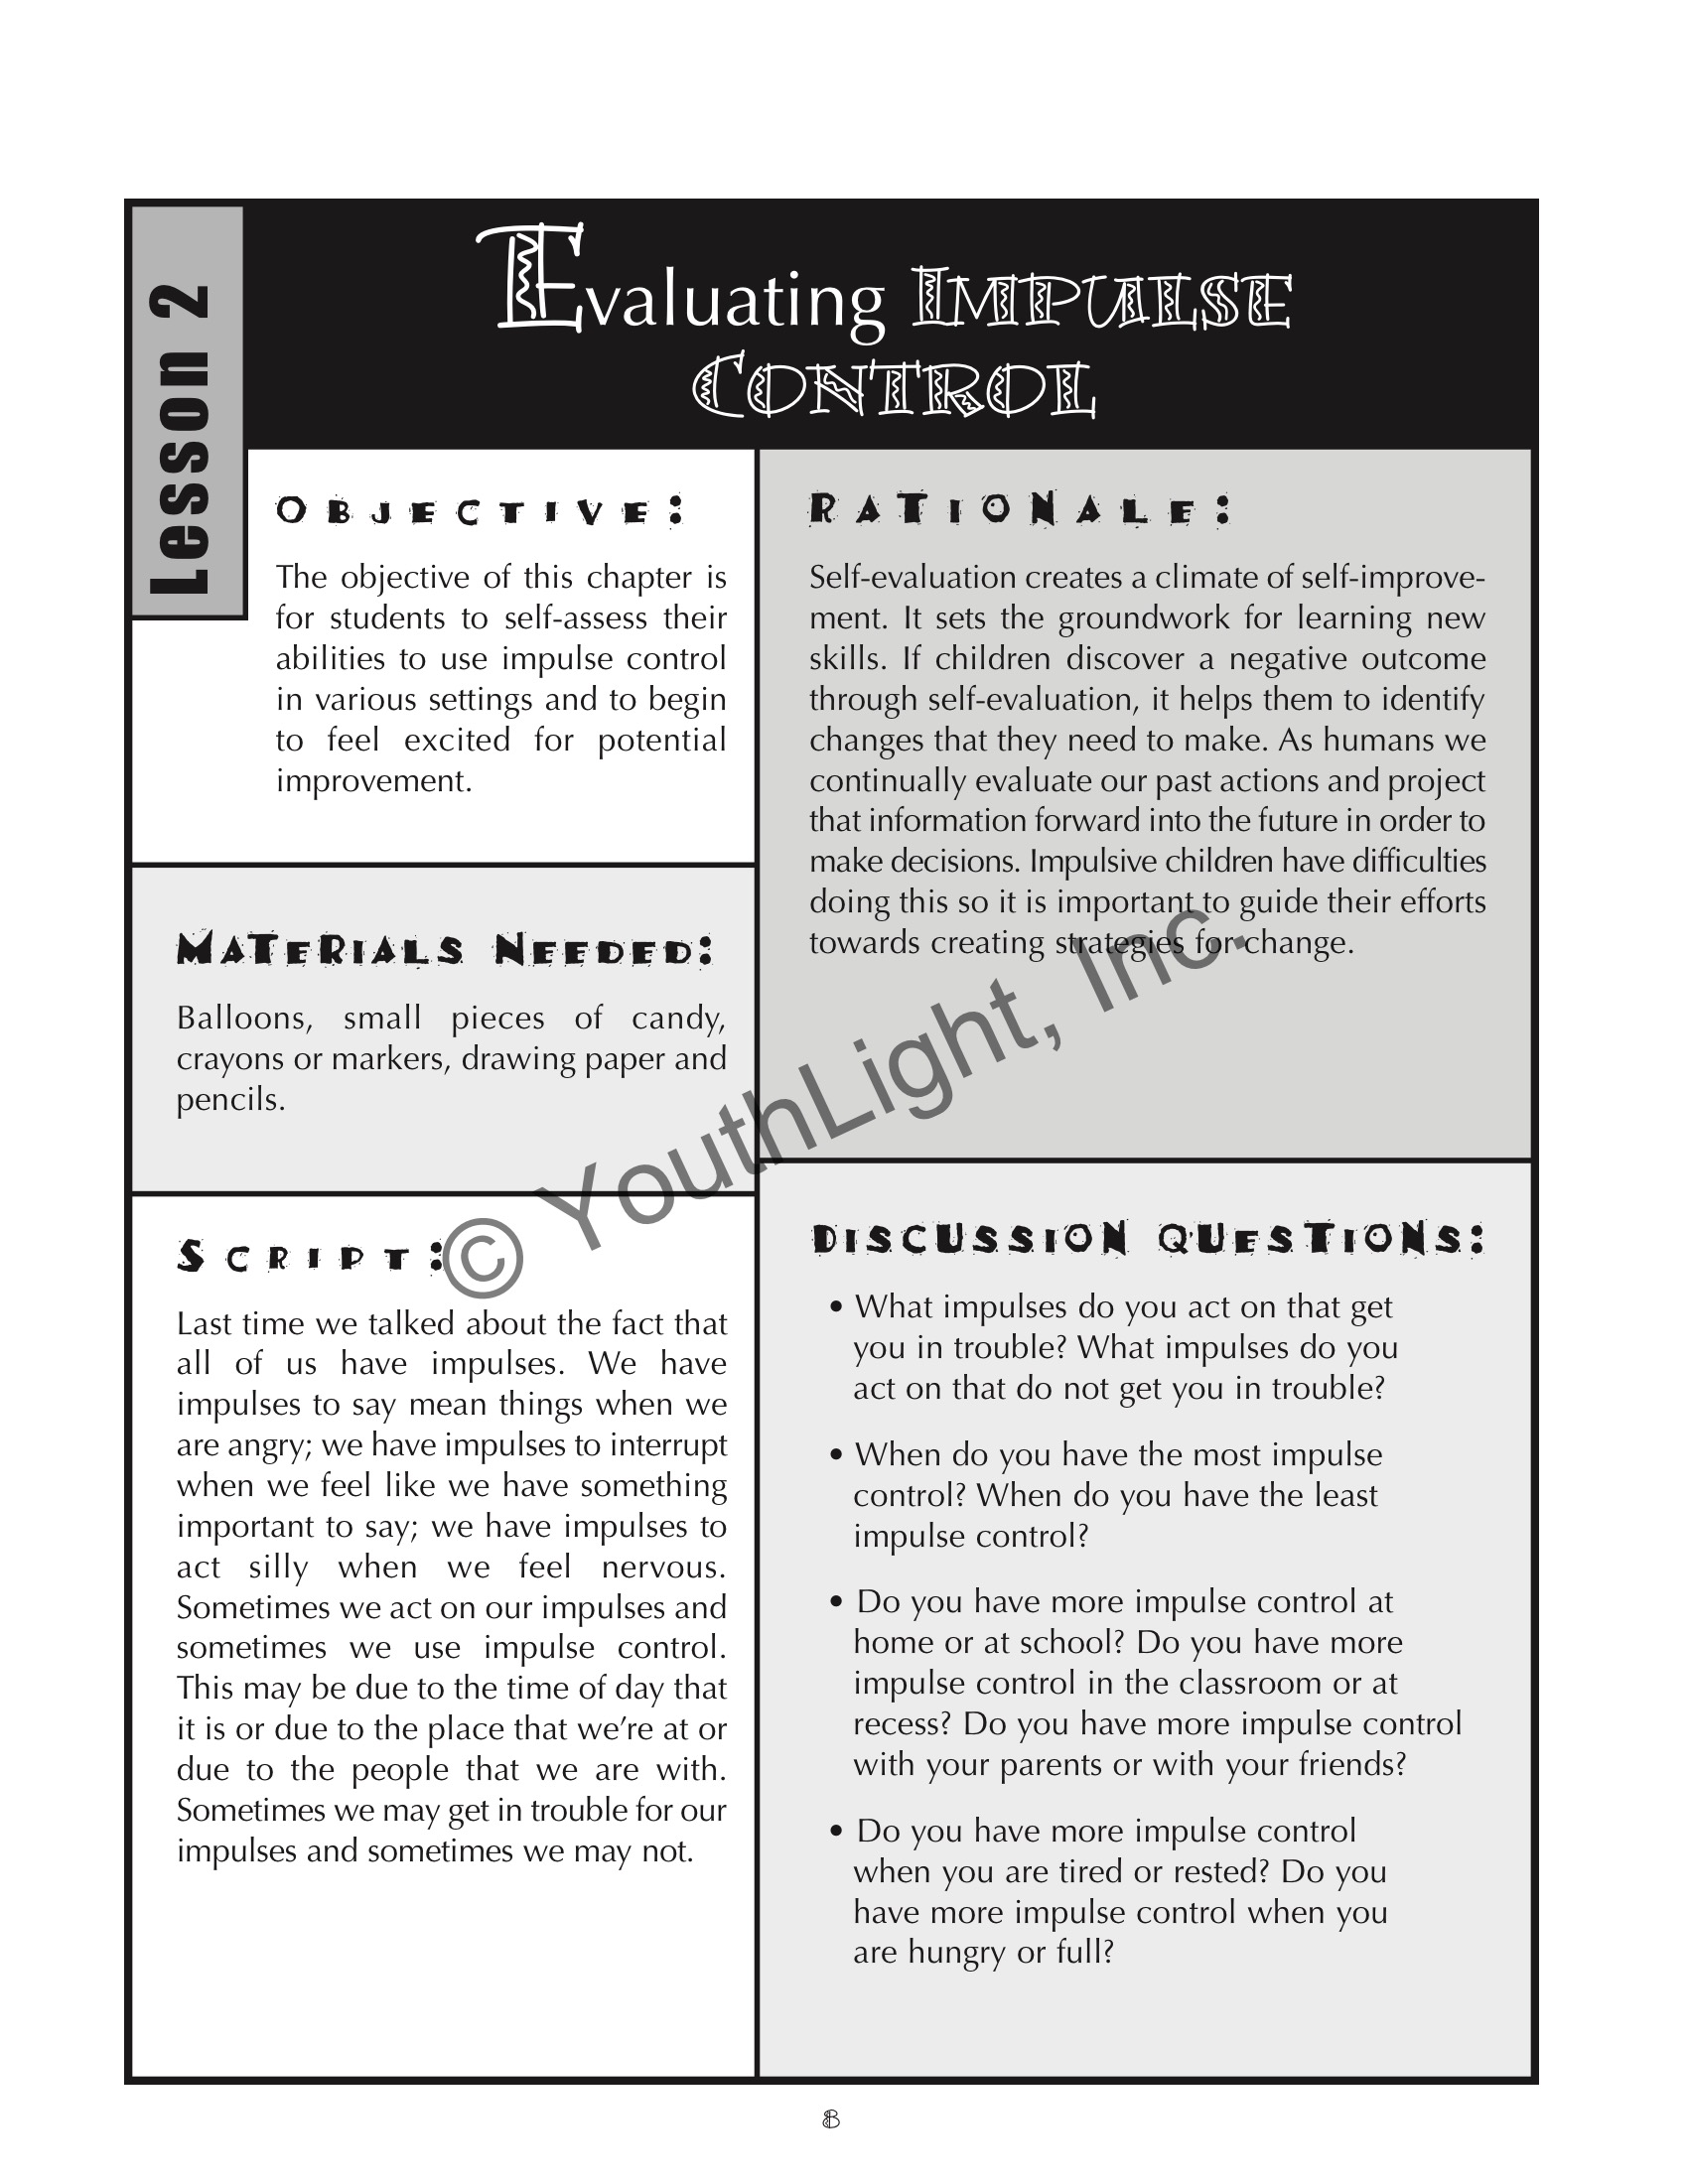 Worksheets Self Control Worksheets impulse control activities worksheets for elementary students with worksheets